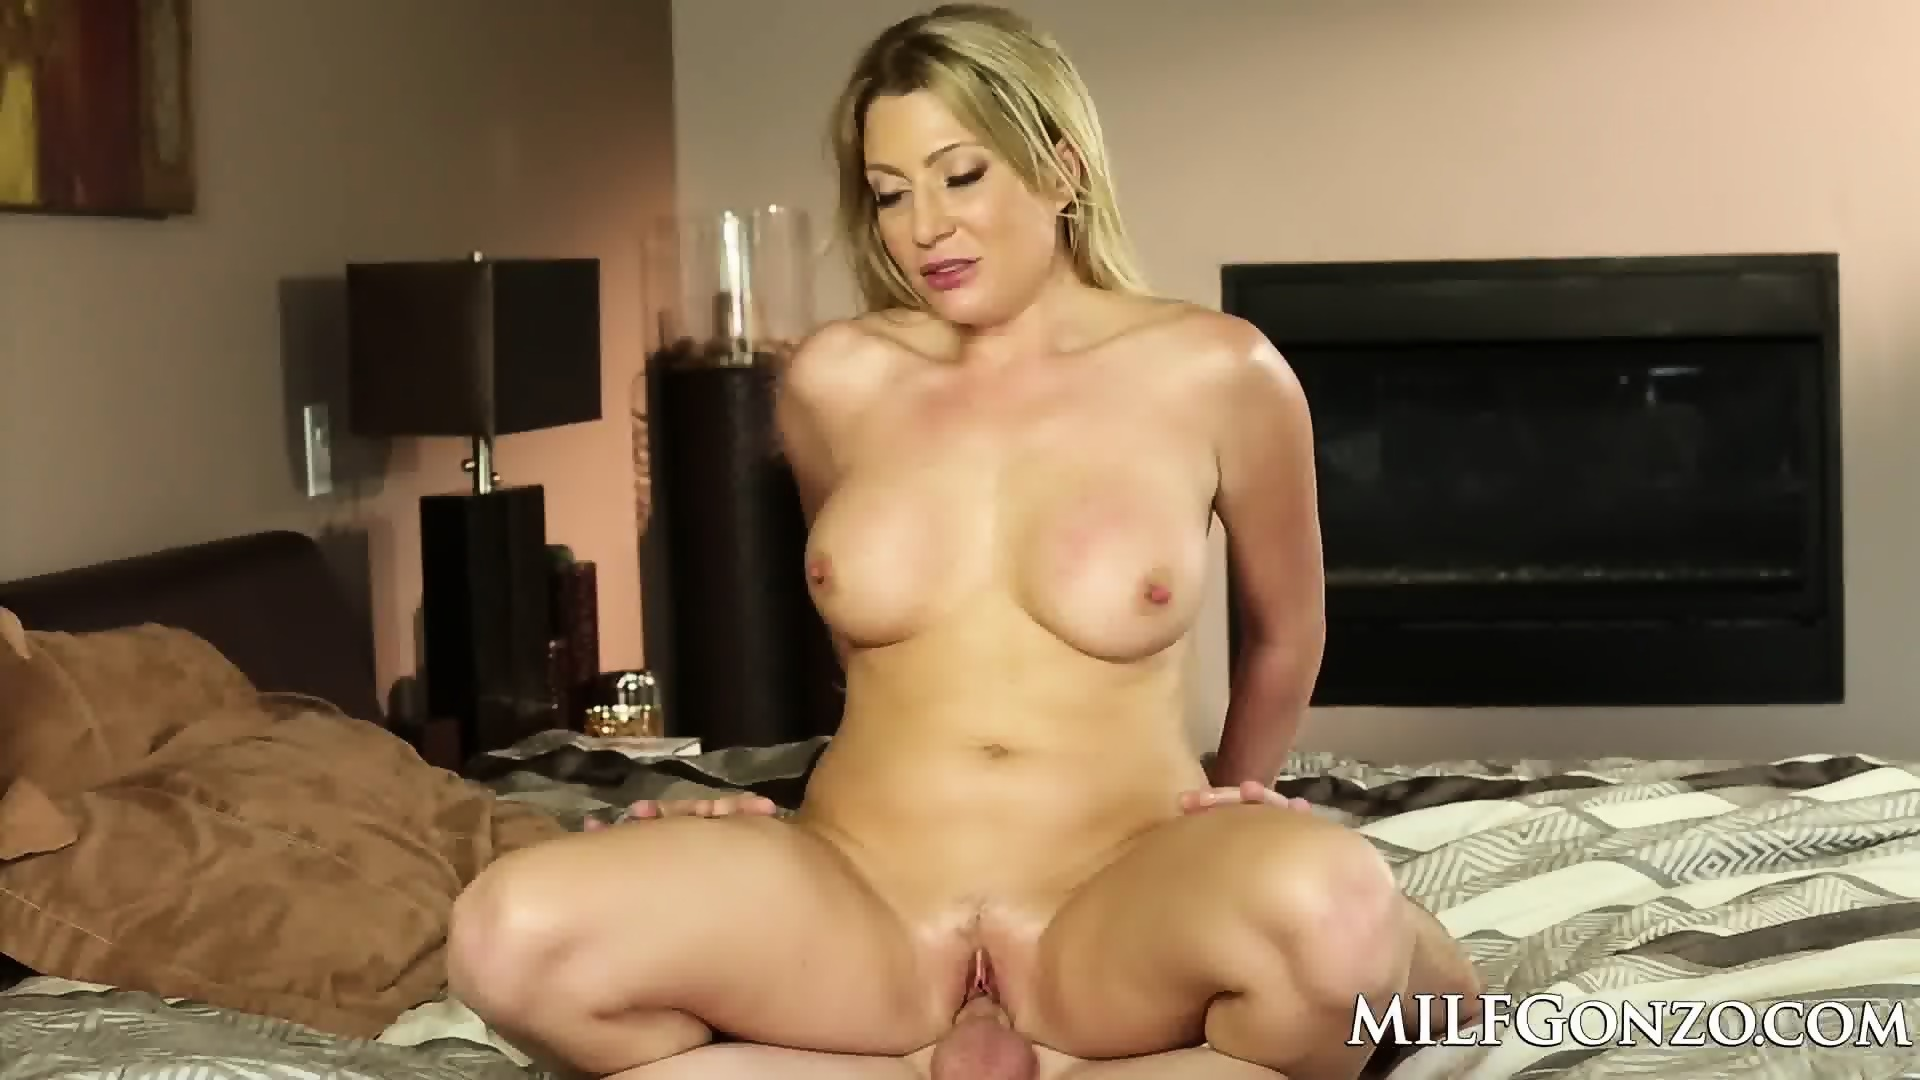 Milfgonzo hot blonde jennifer best fucking her step son 4